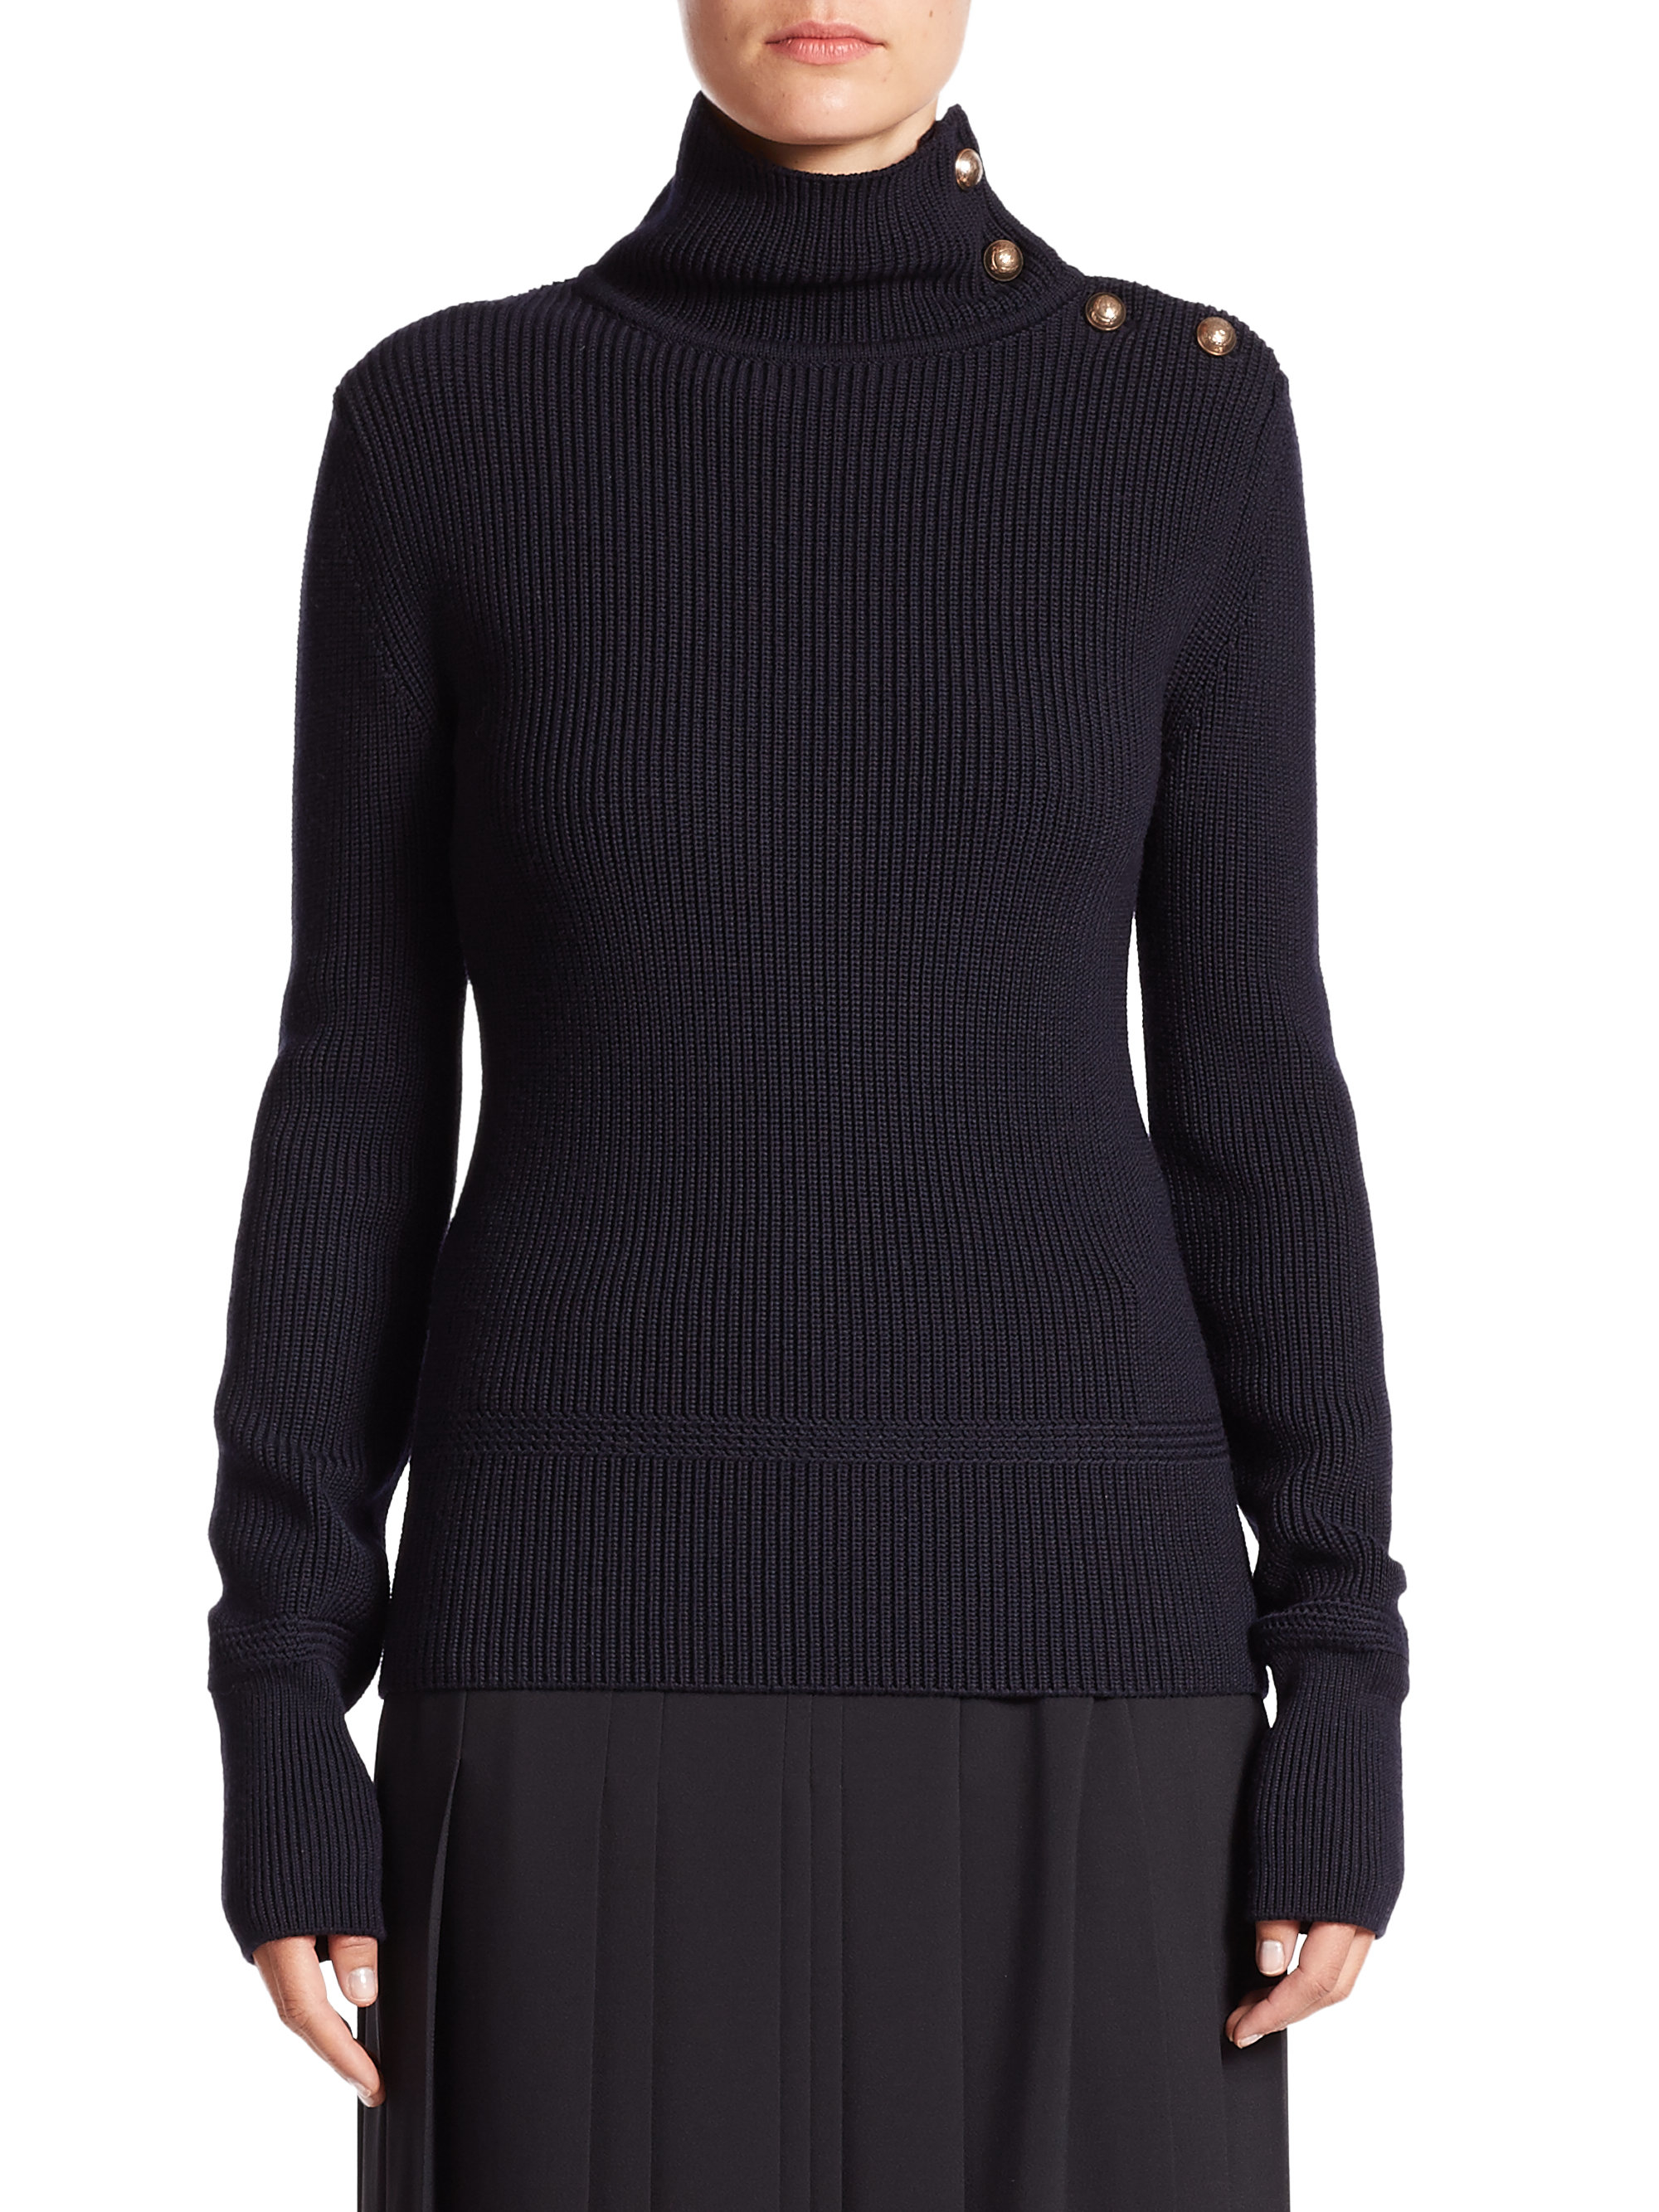 Chloé Button-up Turtleneck Sweater in Blue | Lyst